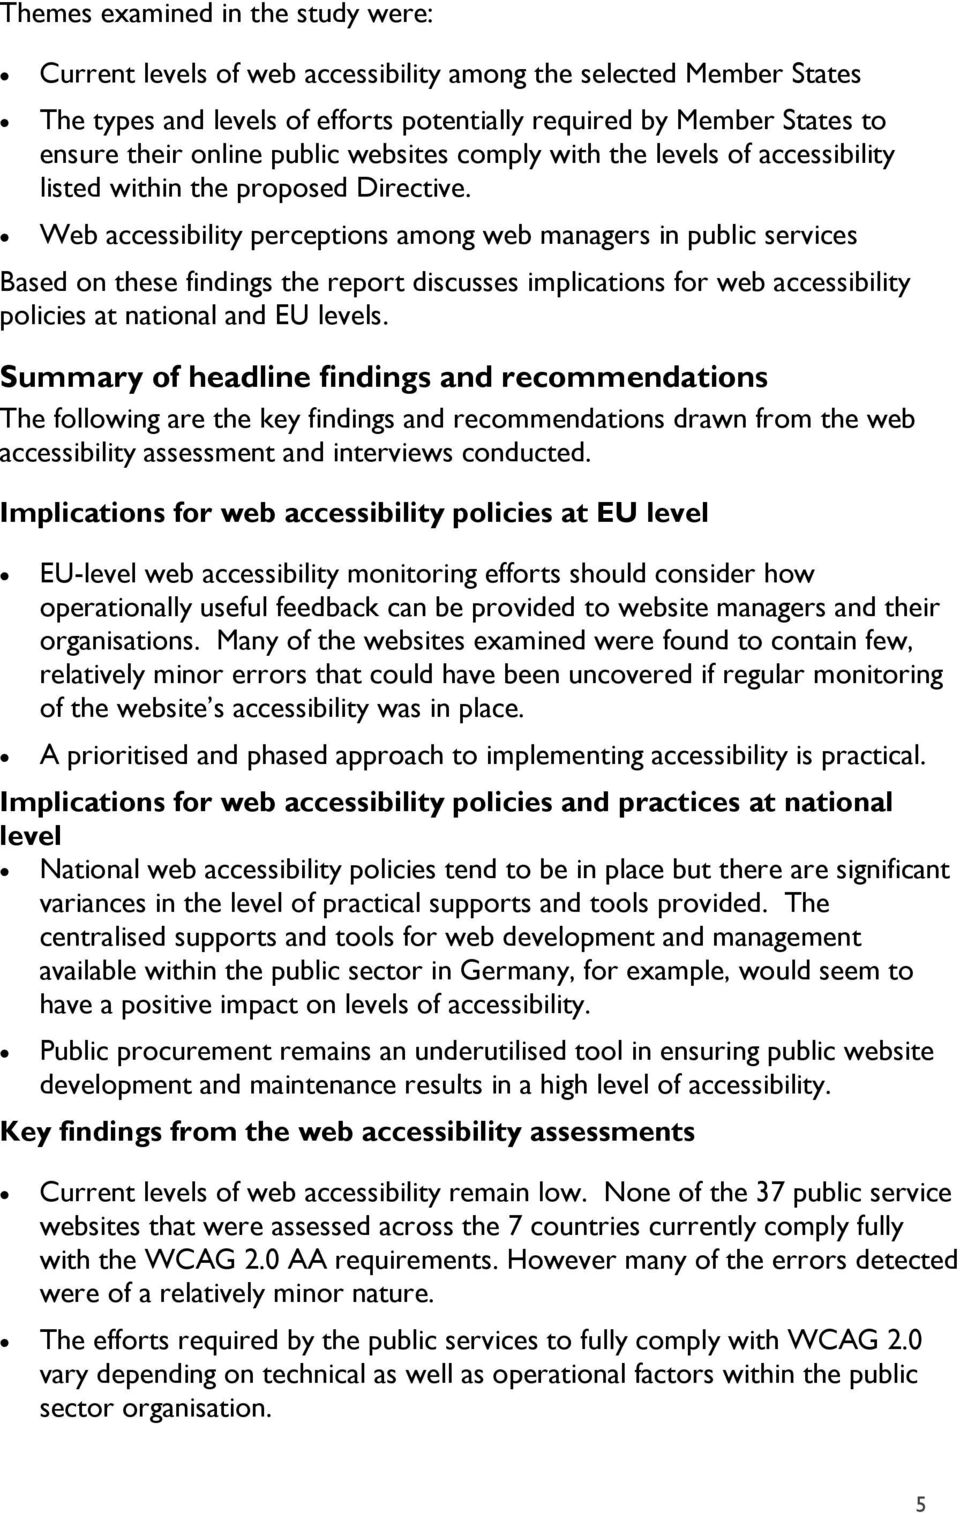 Web accessibility perceptions among web managers in public services Based on these findings the report discusses implications for web accessibility policies at national and EU levels.